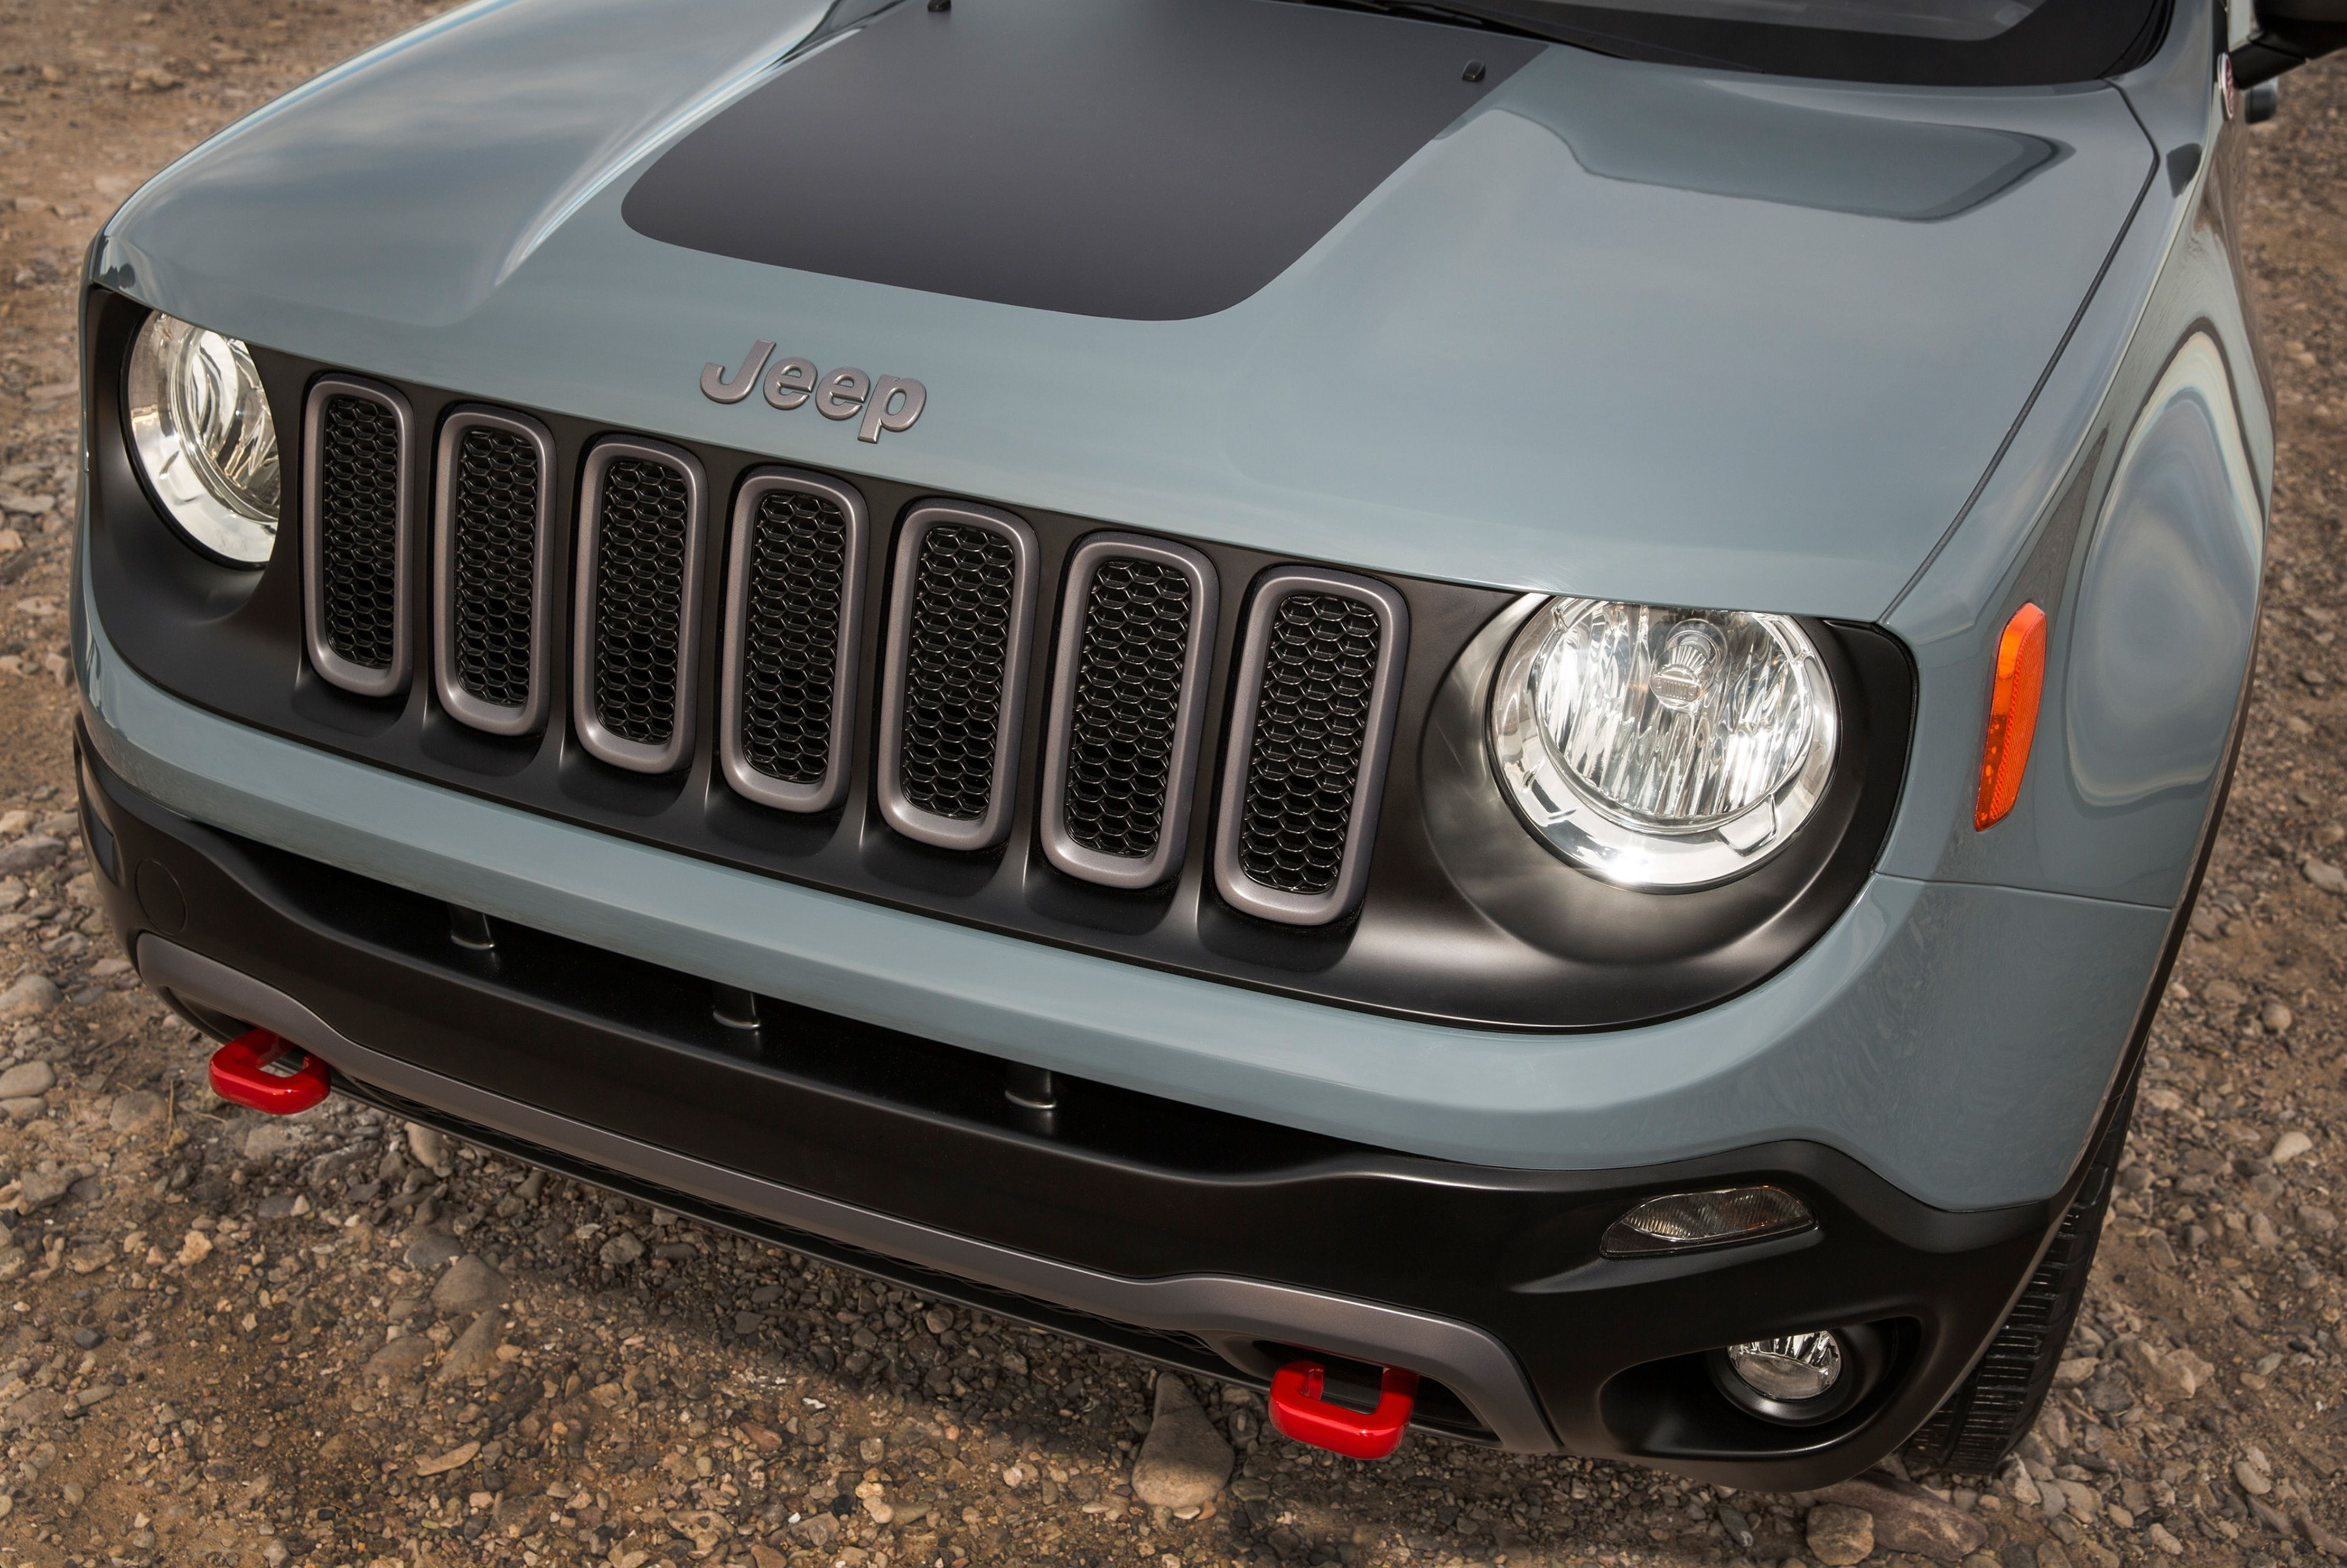 Maintaining The Iconic Front Grill Jeep Renegade Jeep Uk Jeep